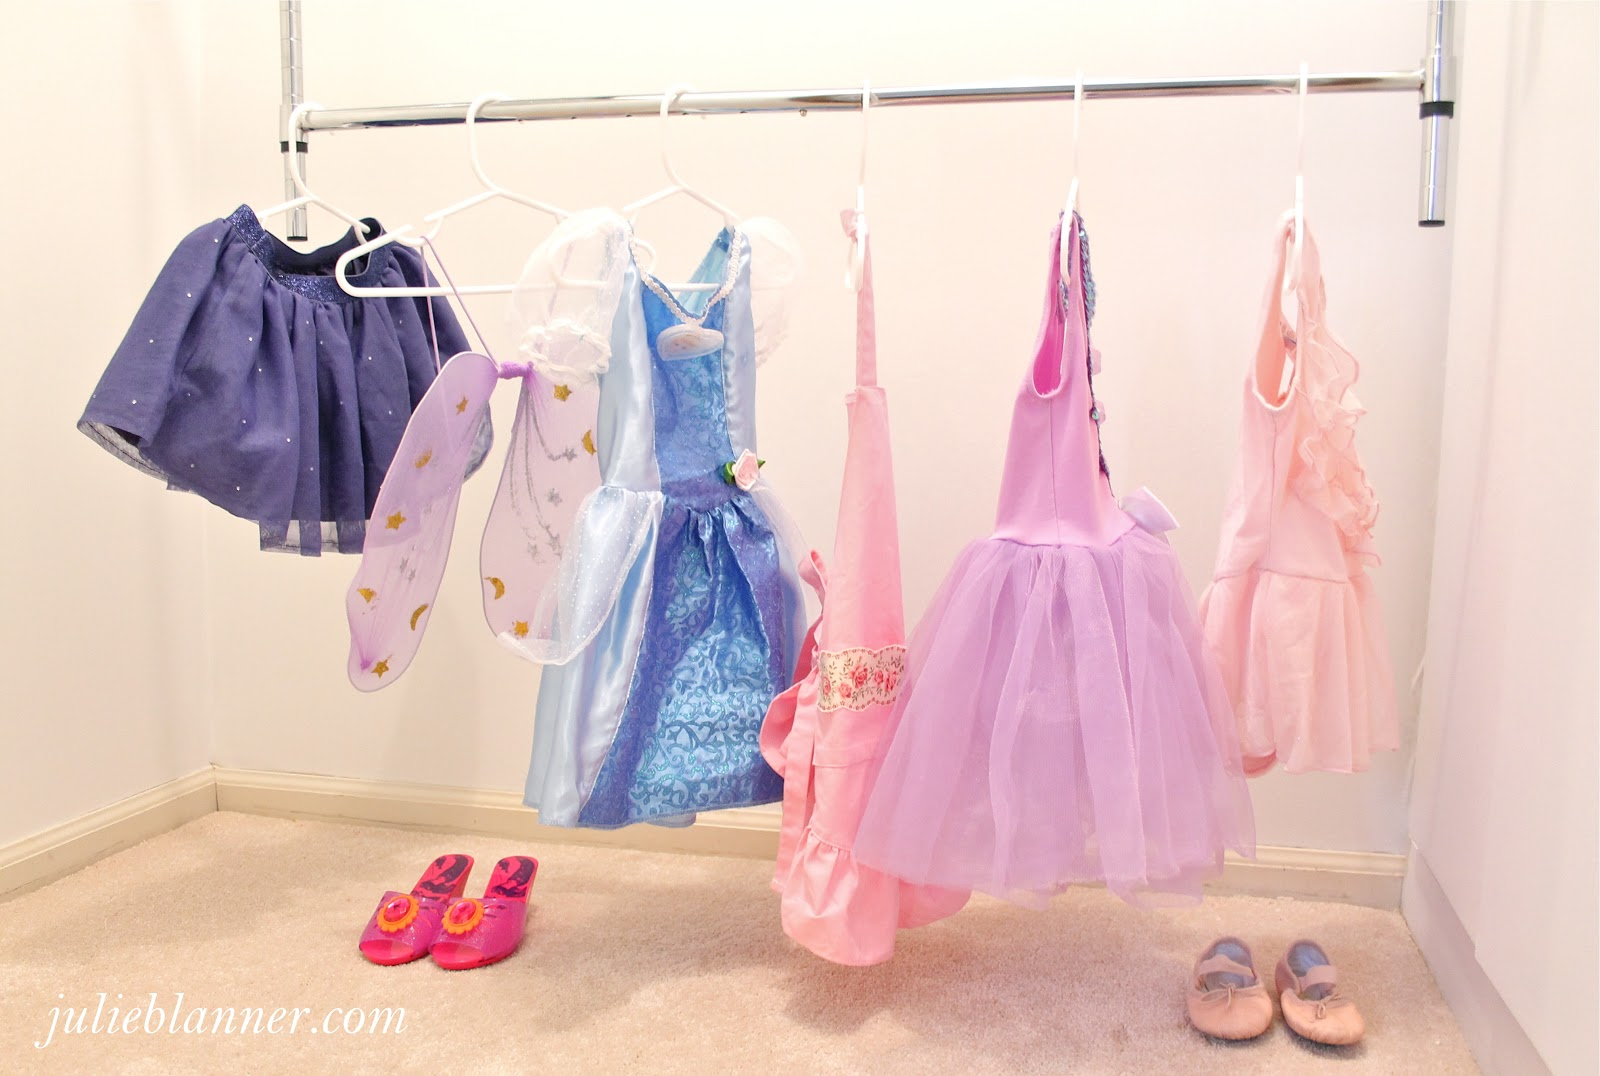 Diy Dress Up Storage Create Your Own Dress Up Closet Julie Blanner Entertaining